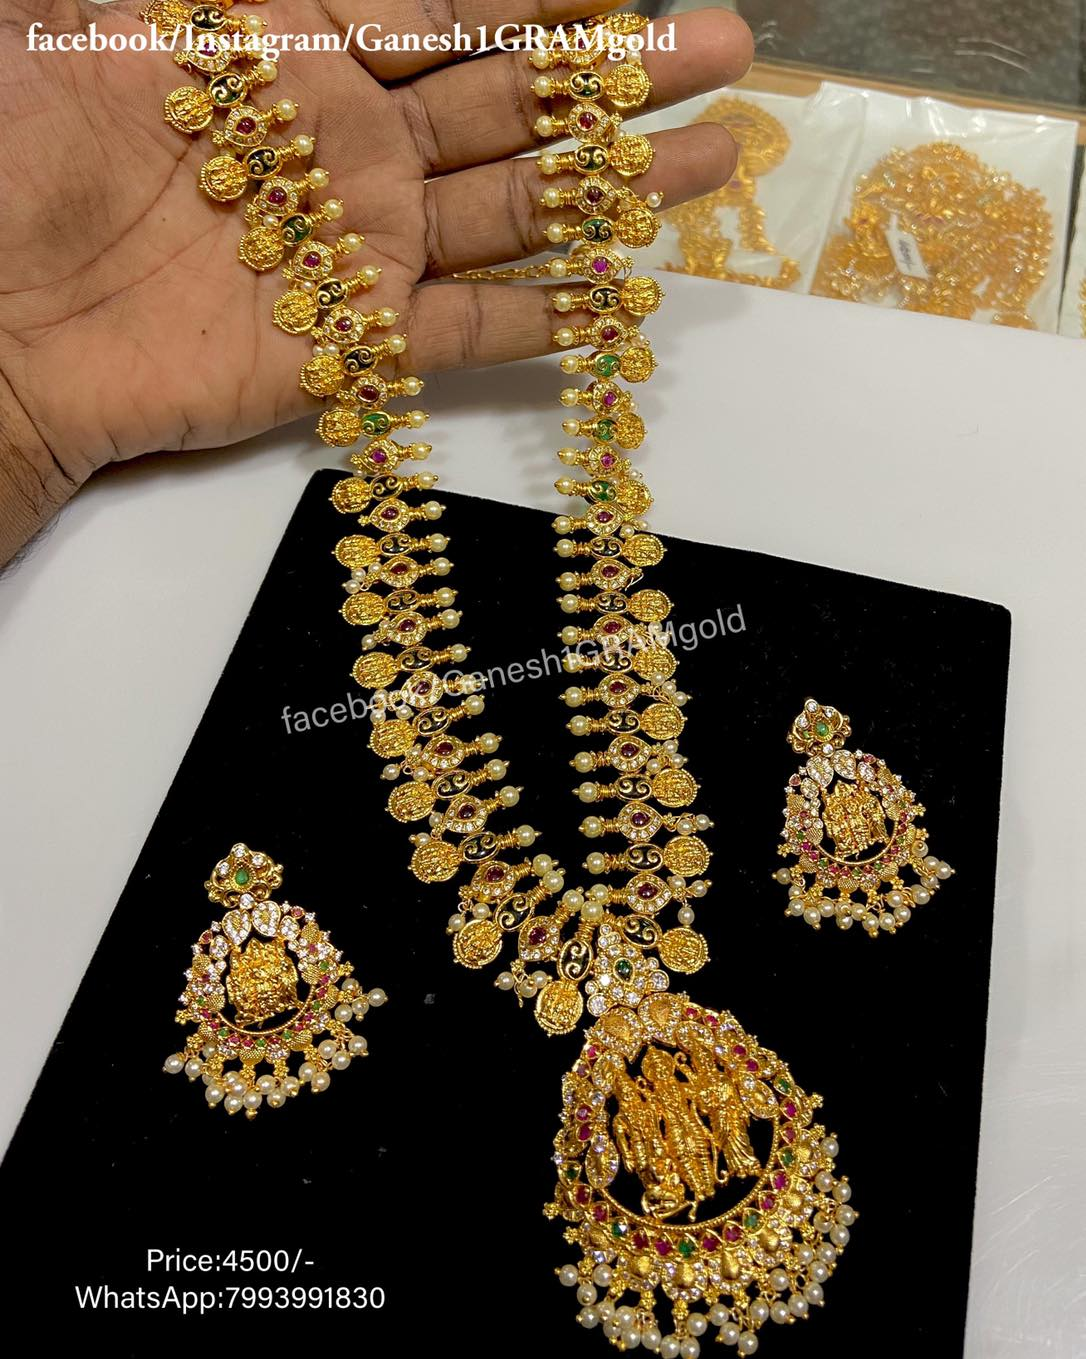 Beautiful one gram gold Ramparivar long haram ...(1st Quality product) Price: 4500/- Cash on delivery (COD) available 1 gram gold jewellery wholesale one gram gold designs with price one gram temple jewellery